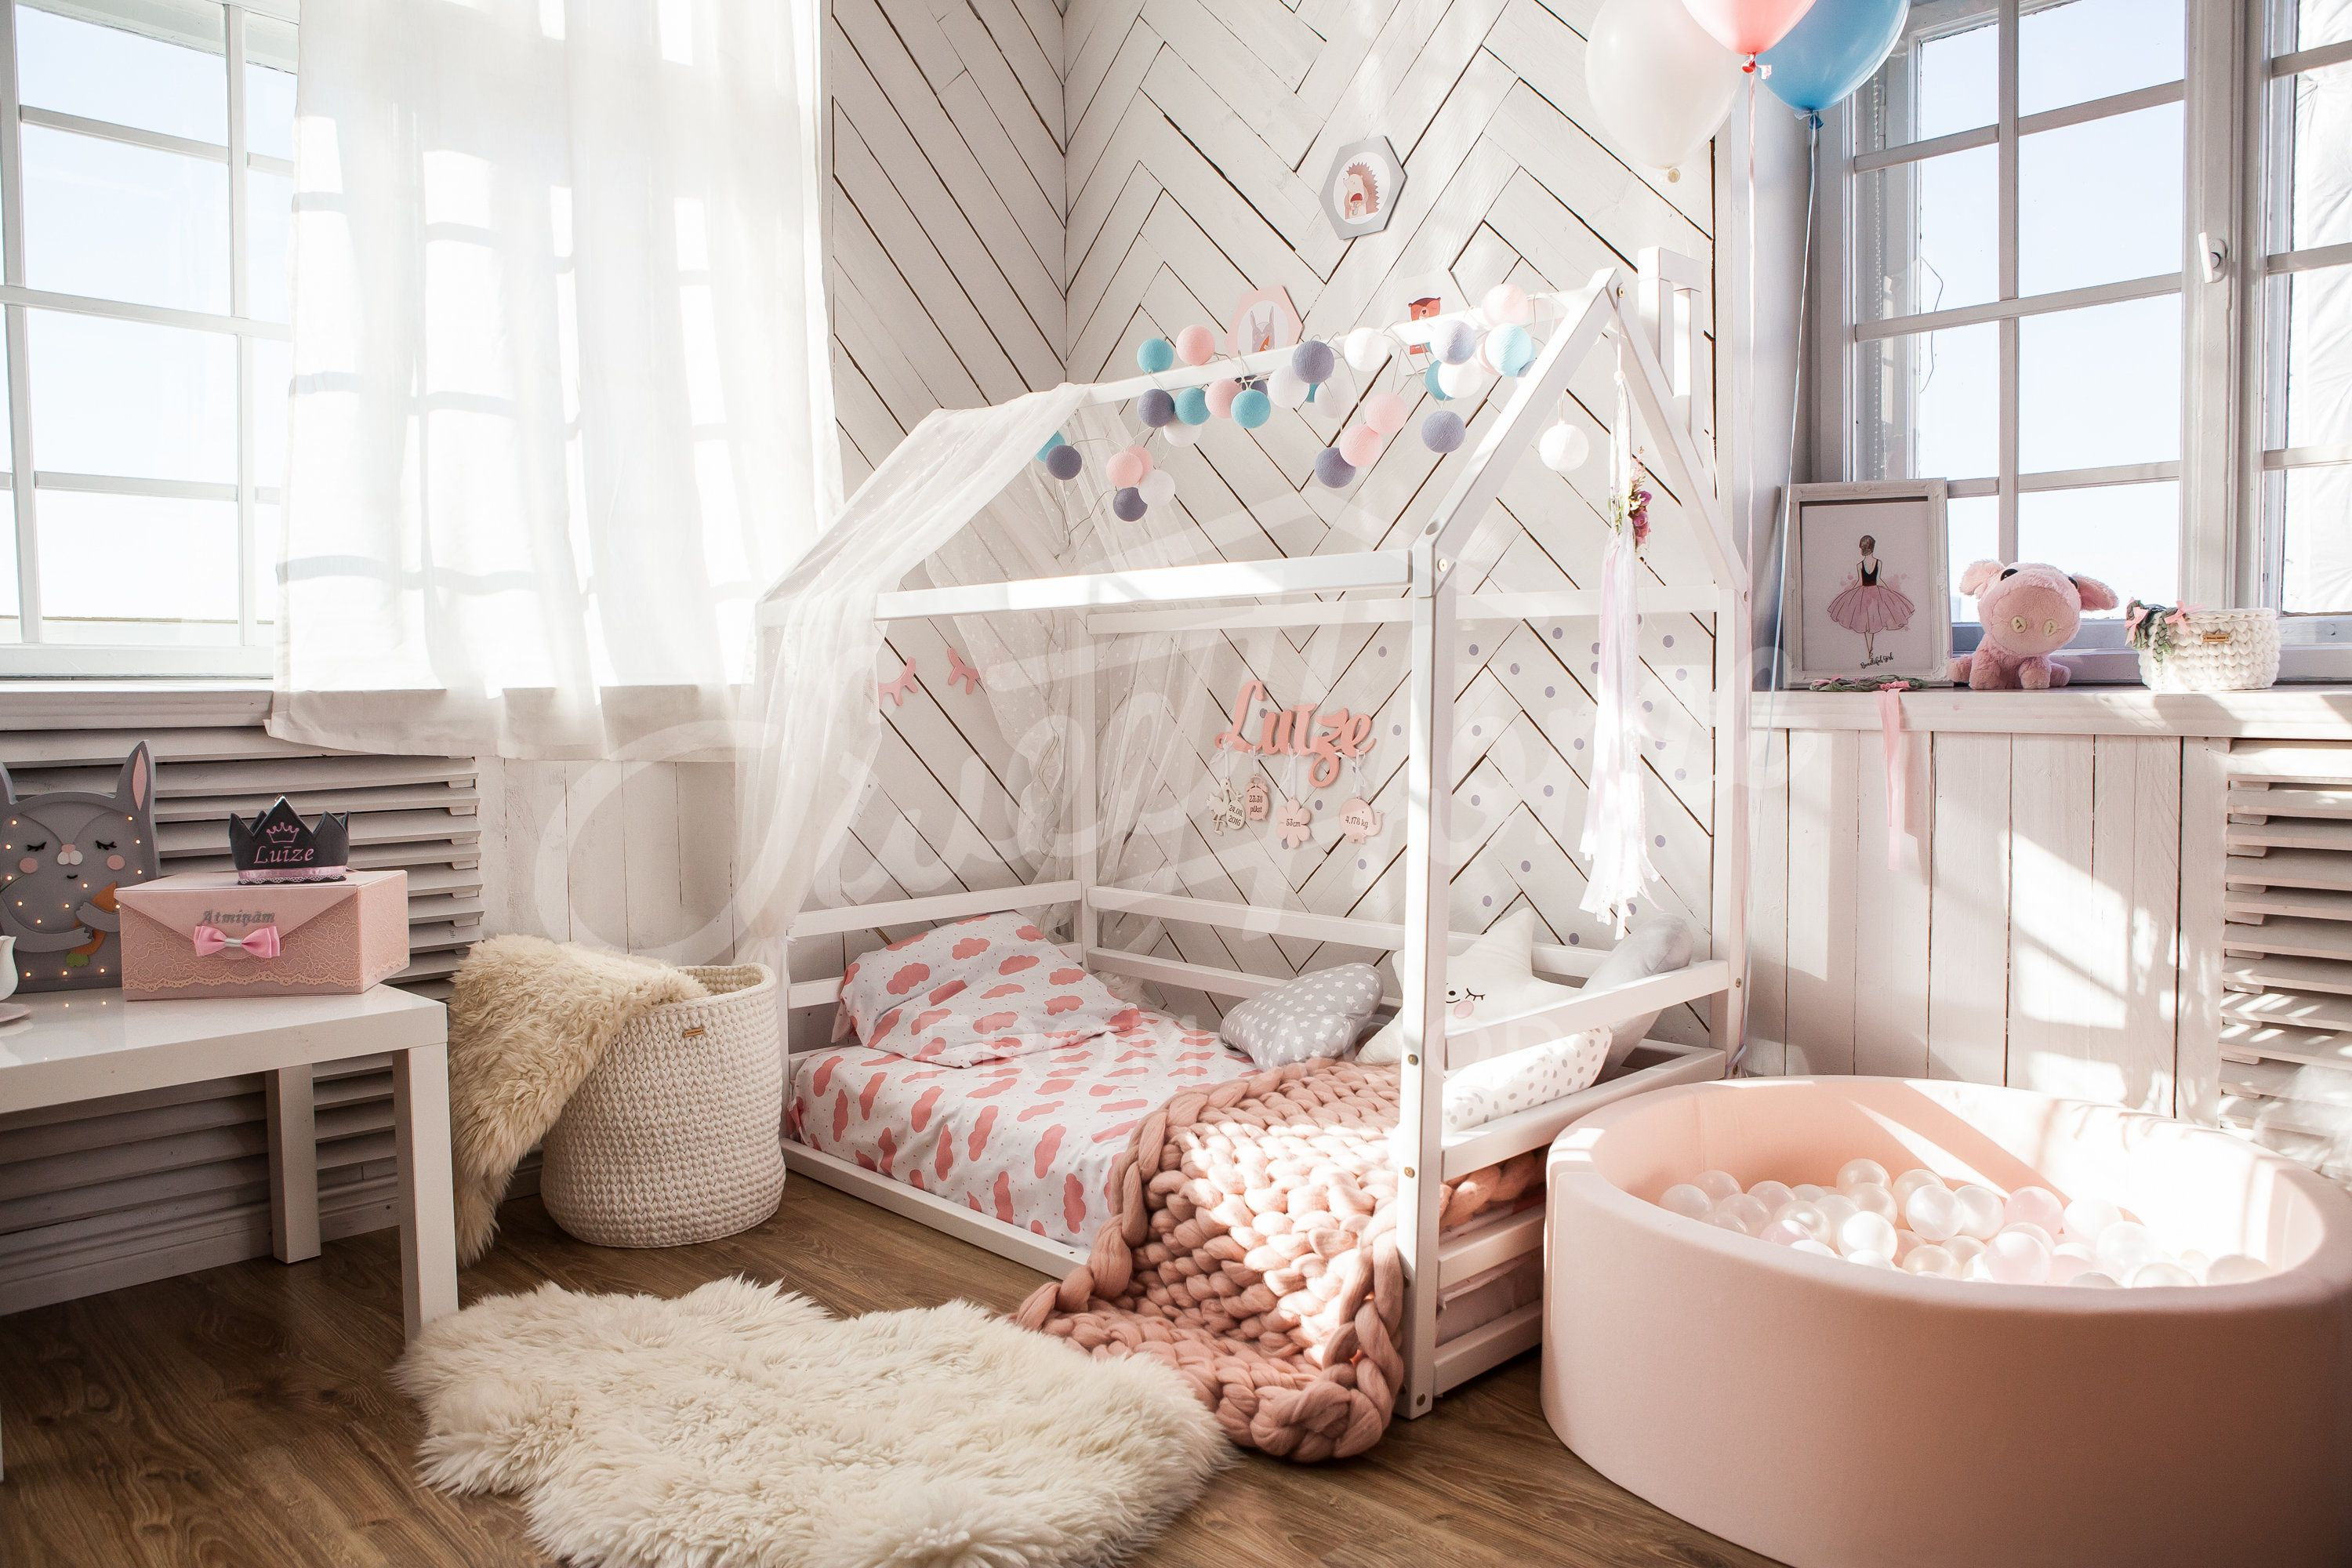 Toddler Bed Or House Bed With Slats Children Bed Frame Bed House Beds Kid Beds House Frame Bed